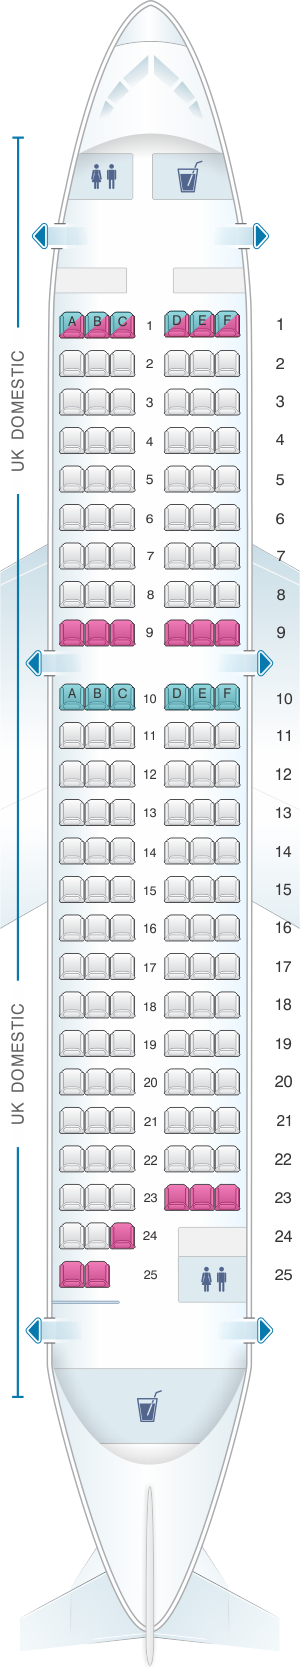 Seat map for British Airways Airbus A319 Domestic Layout